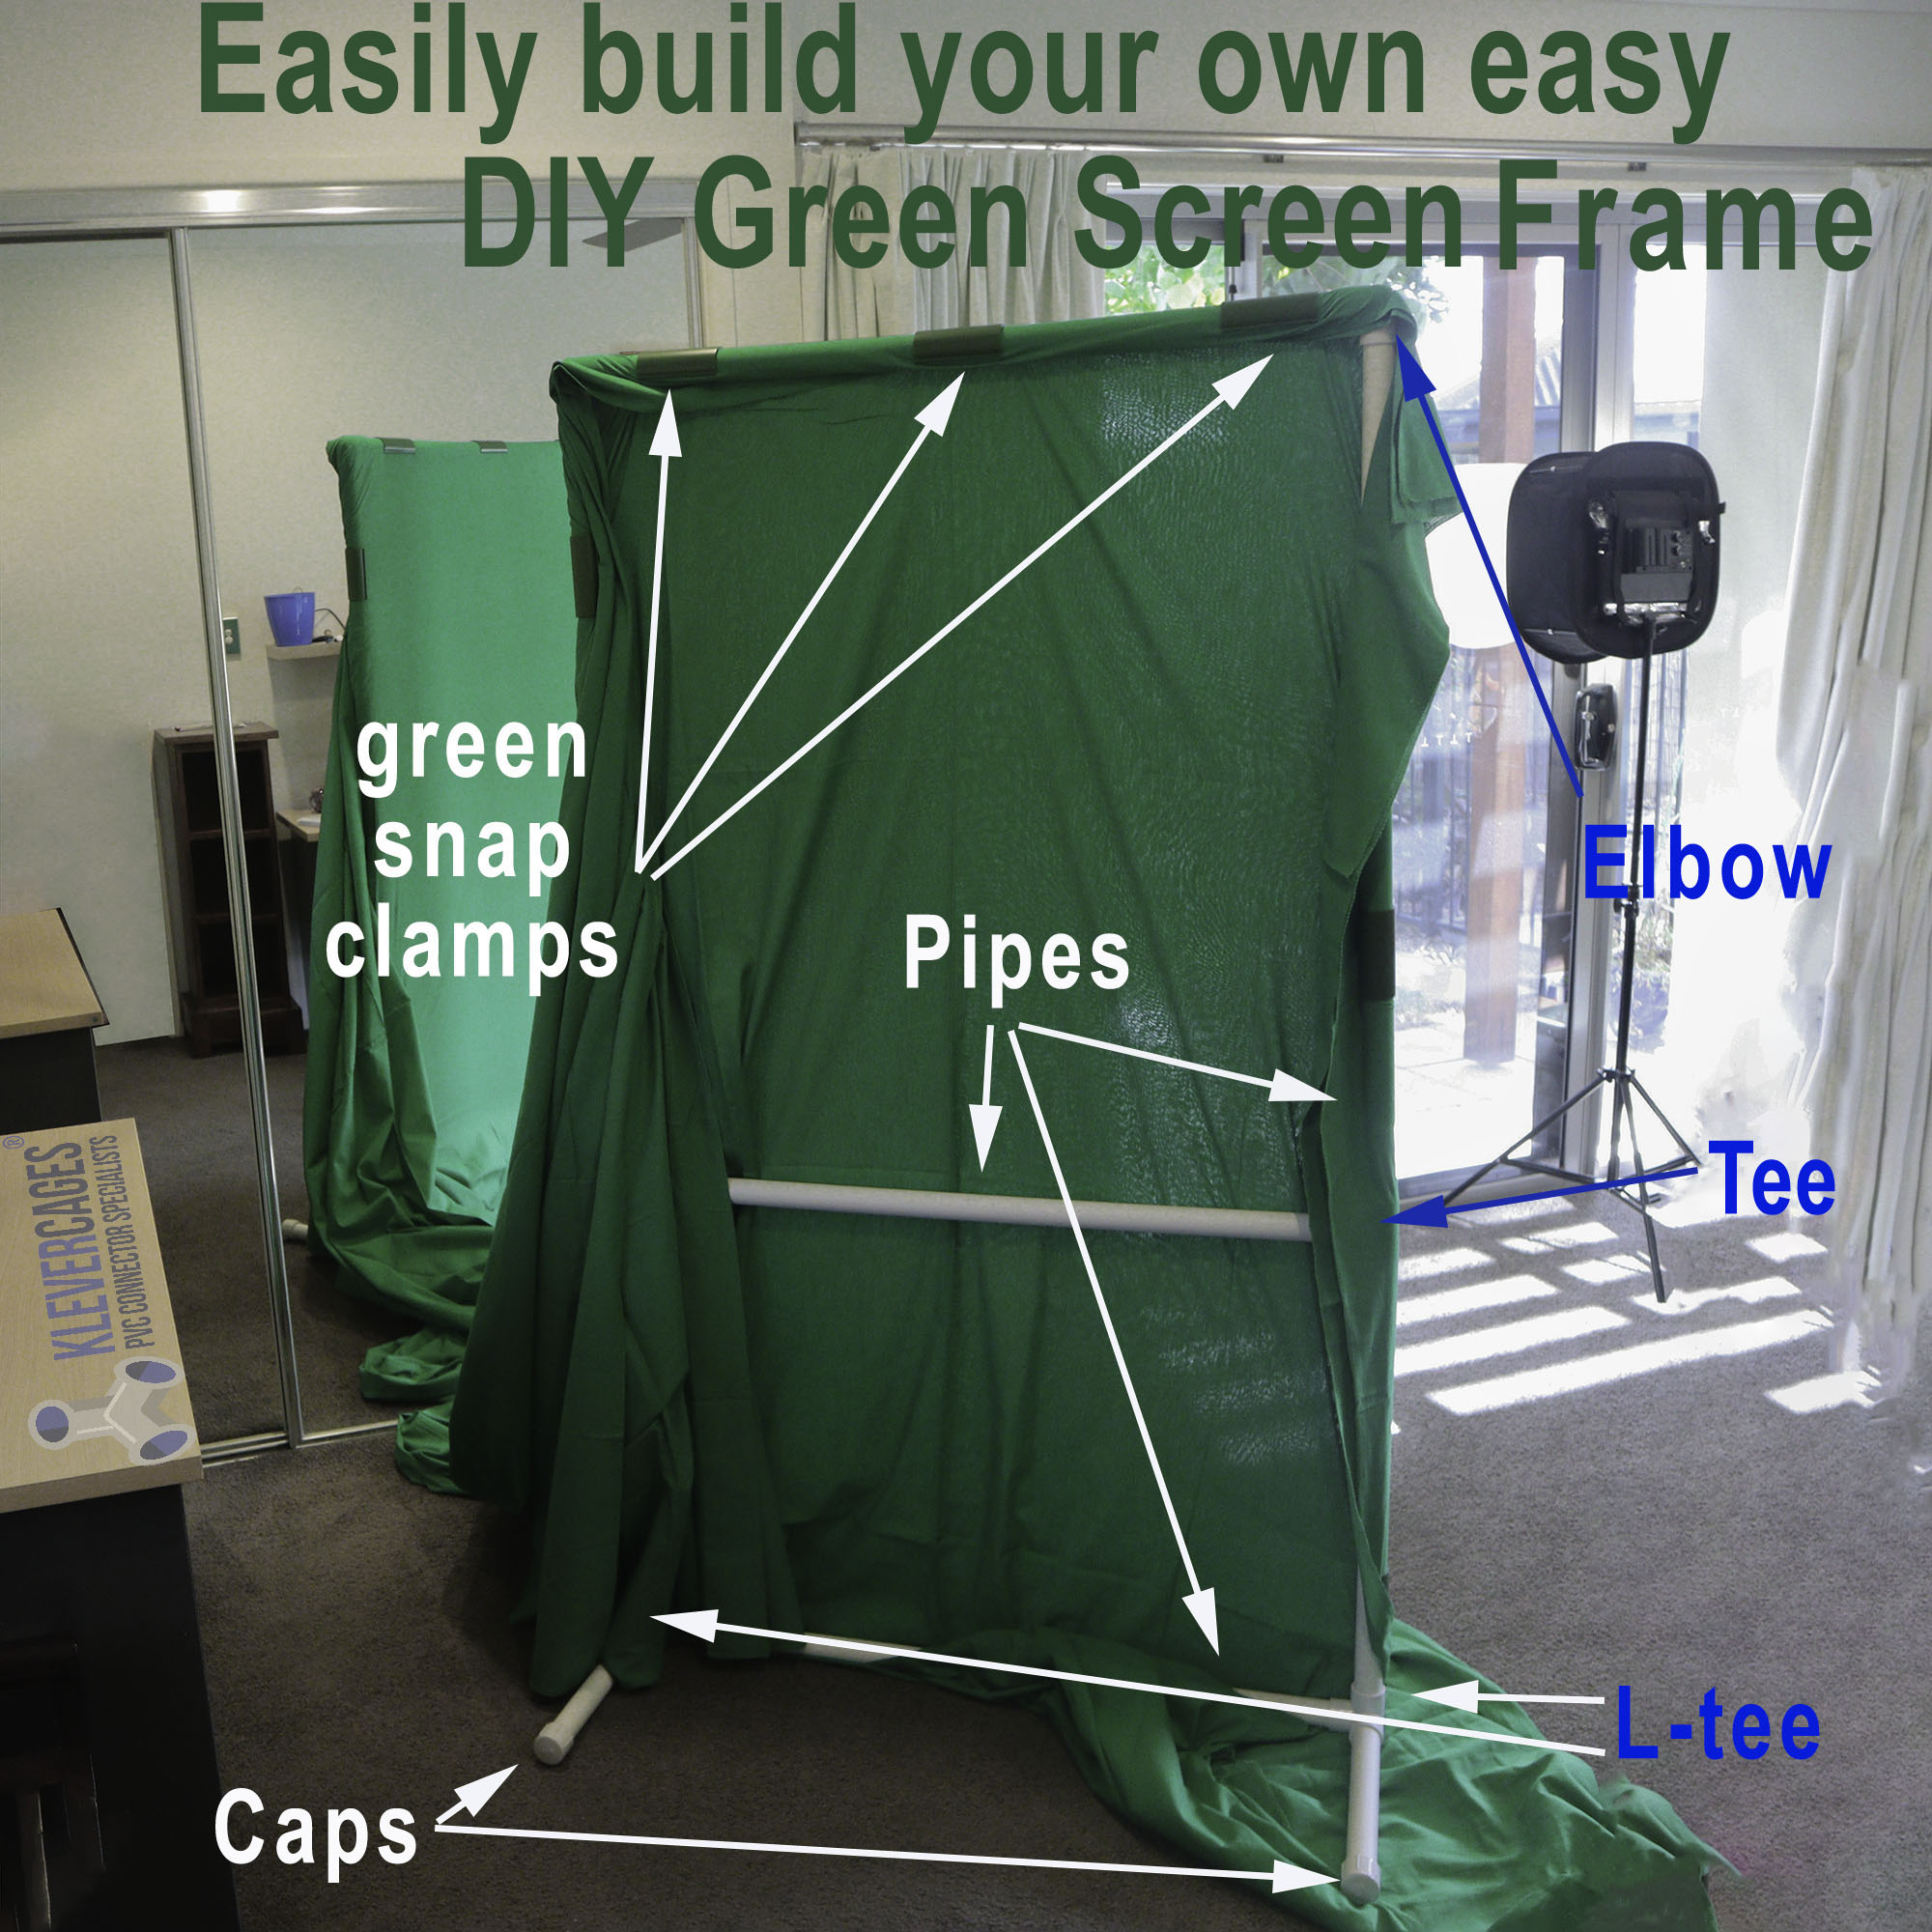 Easily Build your own PVC props  frame greenscreen  photography backdrop frames easily with PVC connectors and pipe from Klever Cages